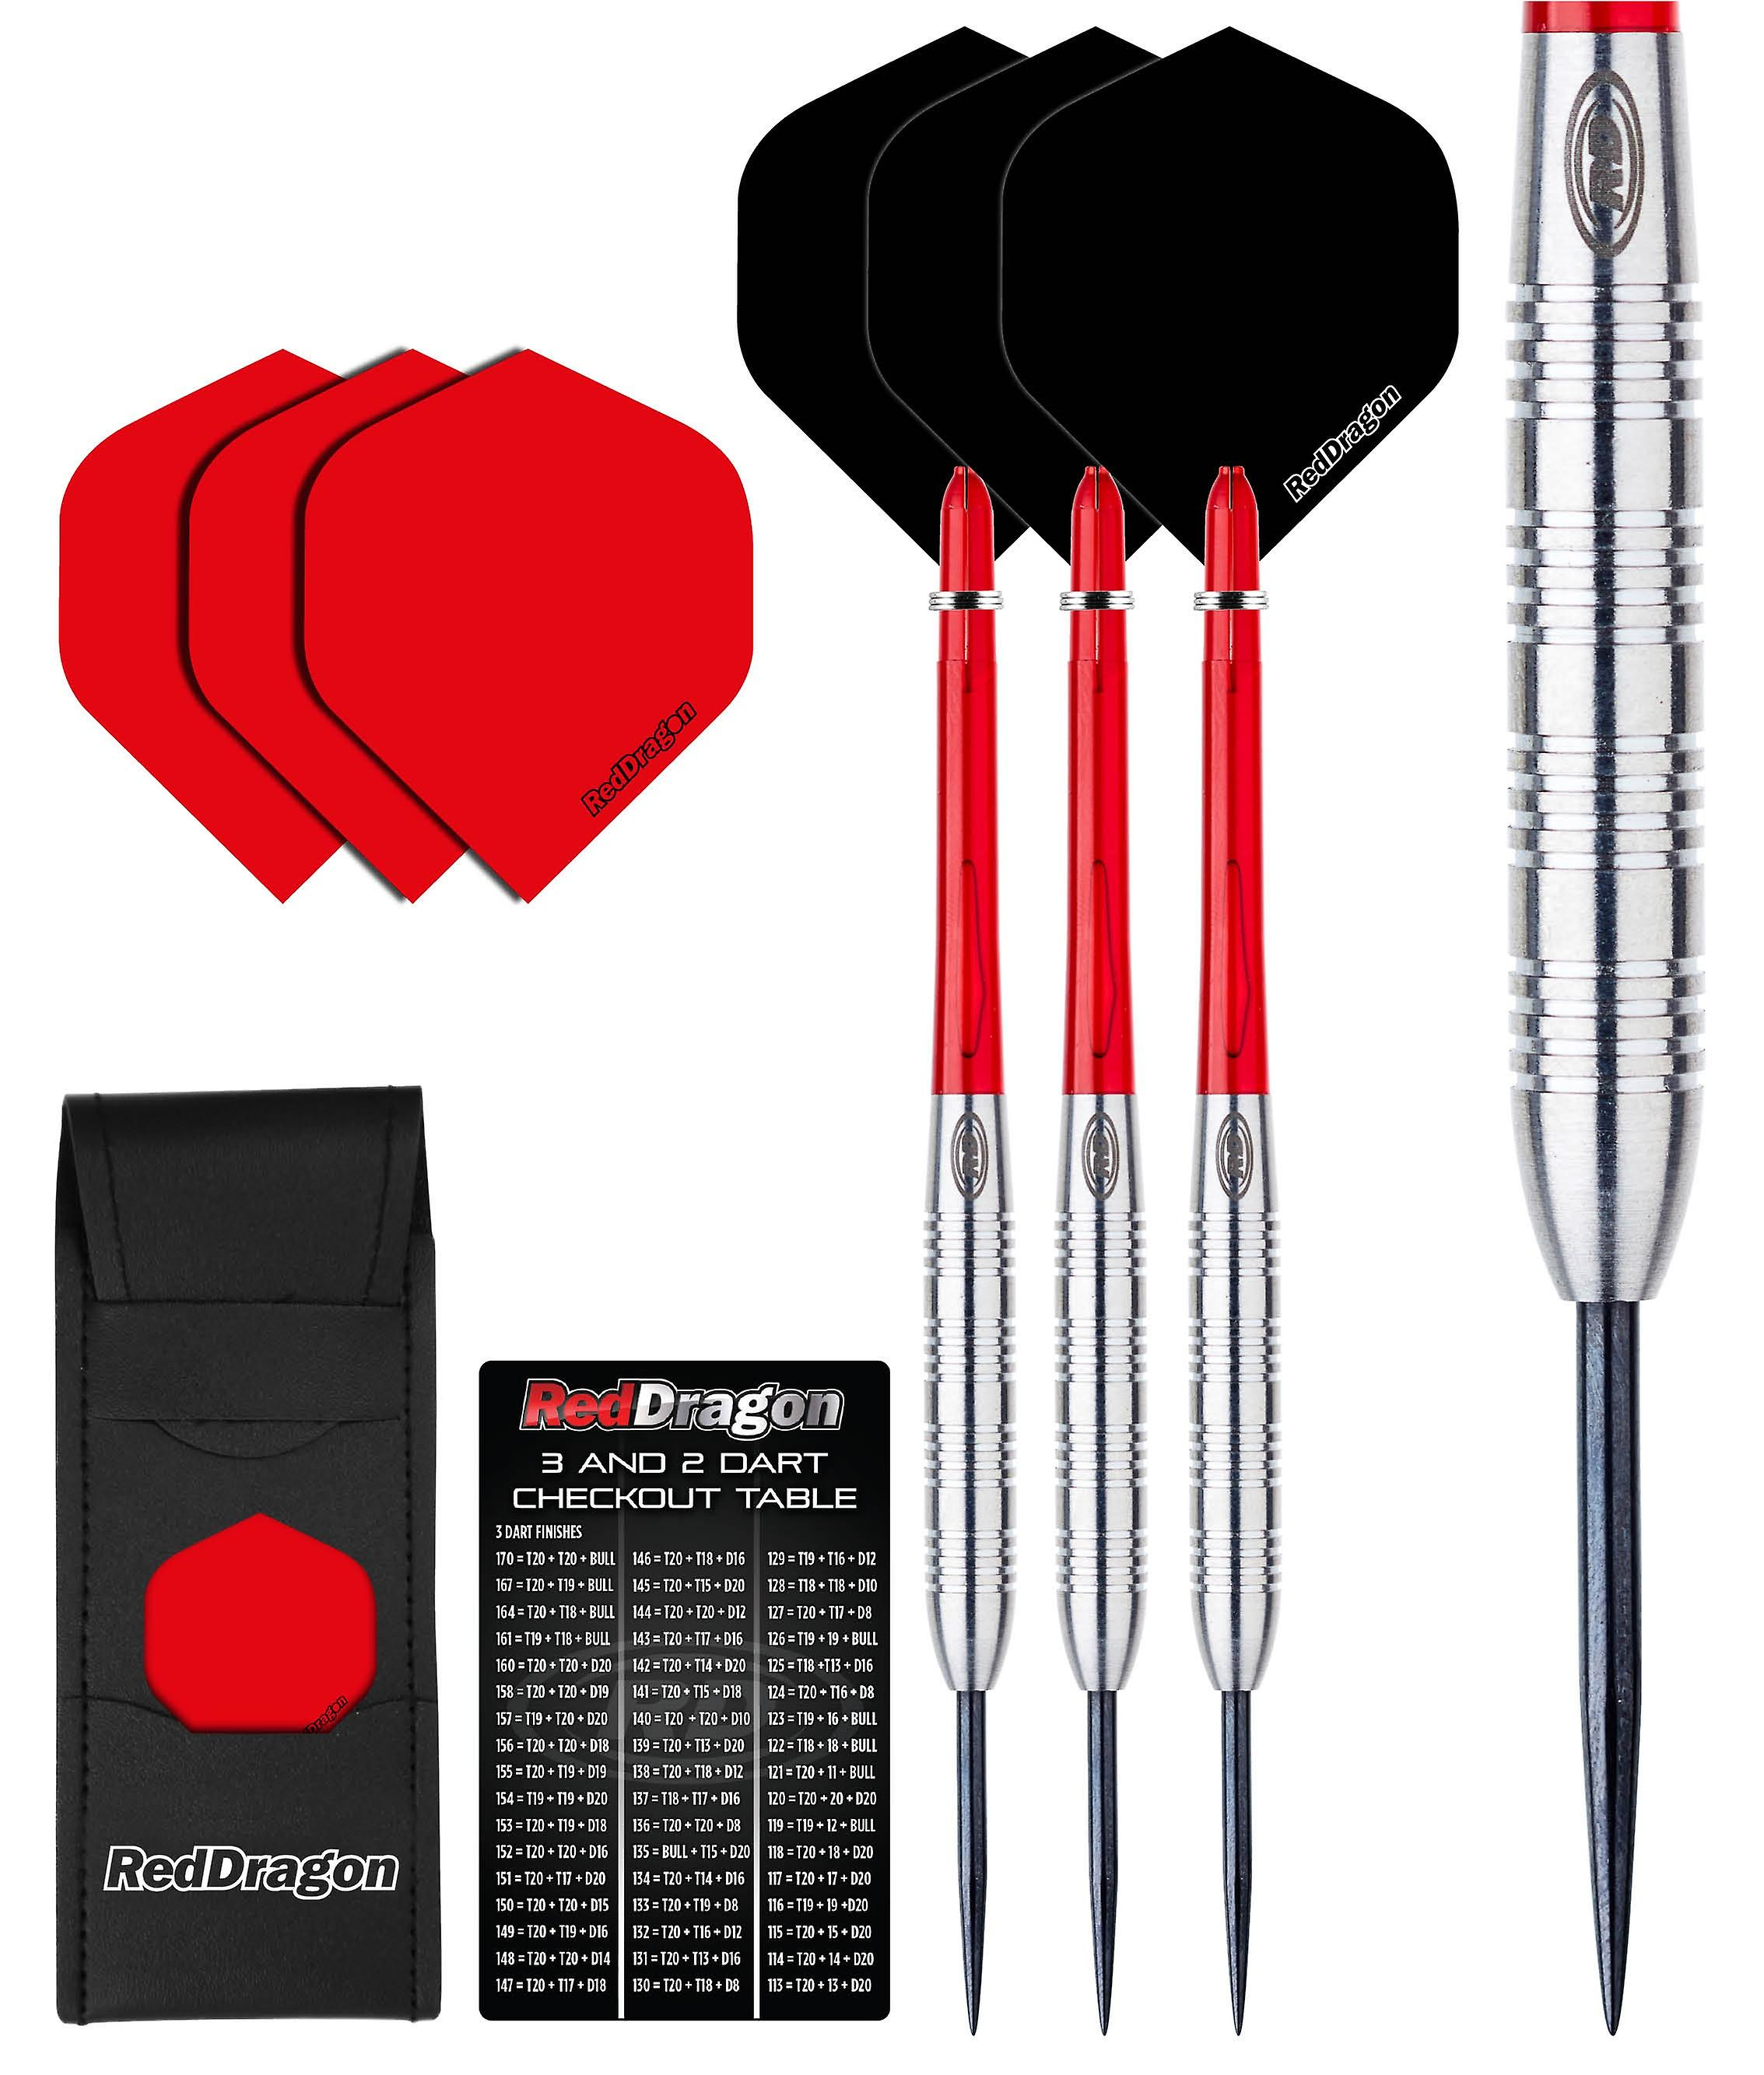 Red Dragon Hell Fire B: 24g - 80% Tungsten Steel Darts with Flights, Shafts, Wallet & Red Dragon Checkout Card